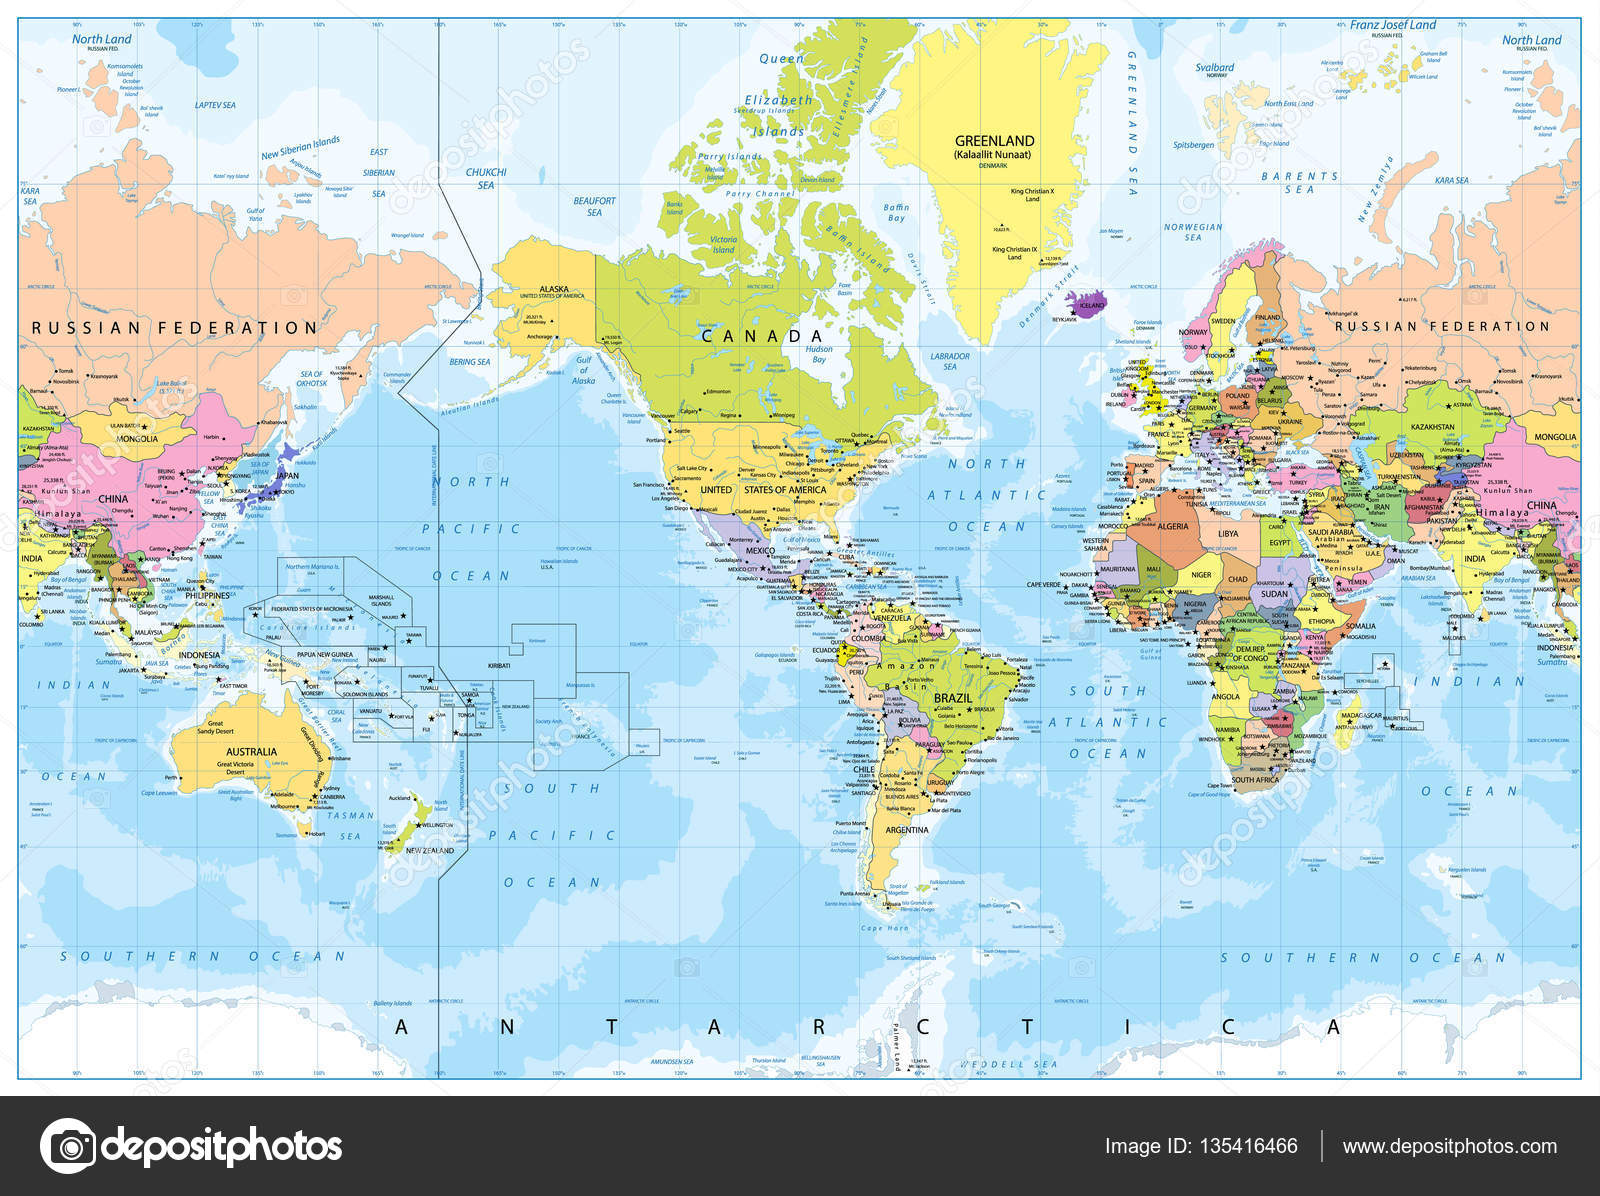 World map america in center bathymetry stock vector livenart world map america in center bathymetry highly detailed vector illustration of world map vector by livenart gumiabroncs Image collections